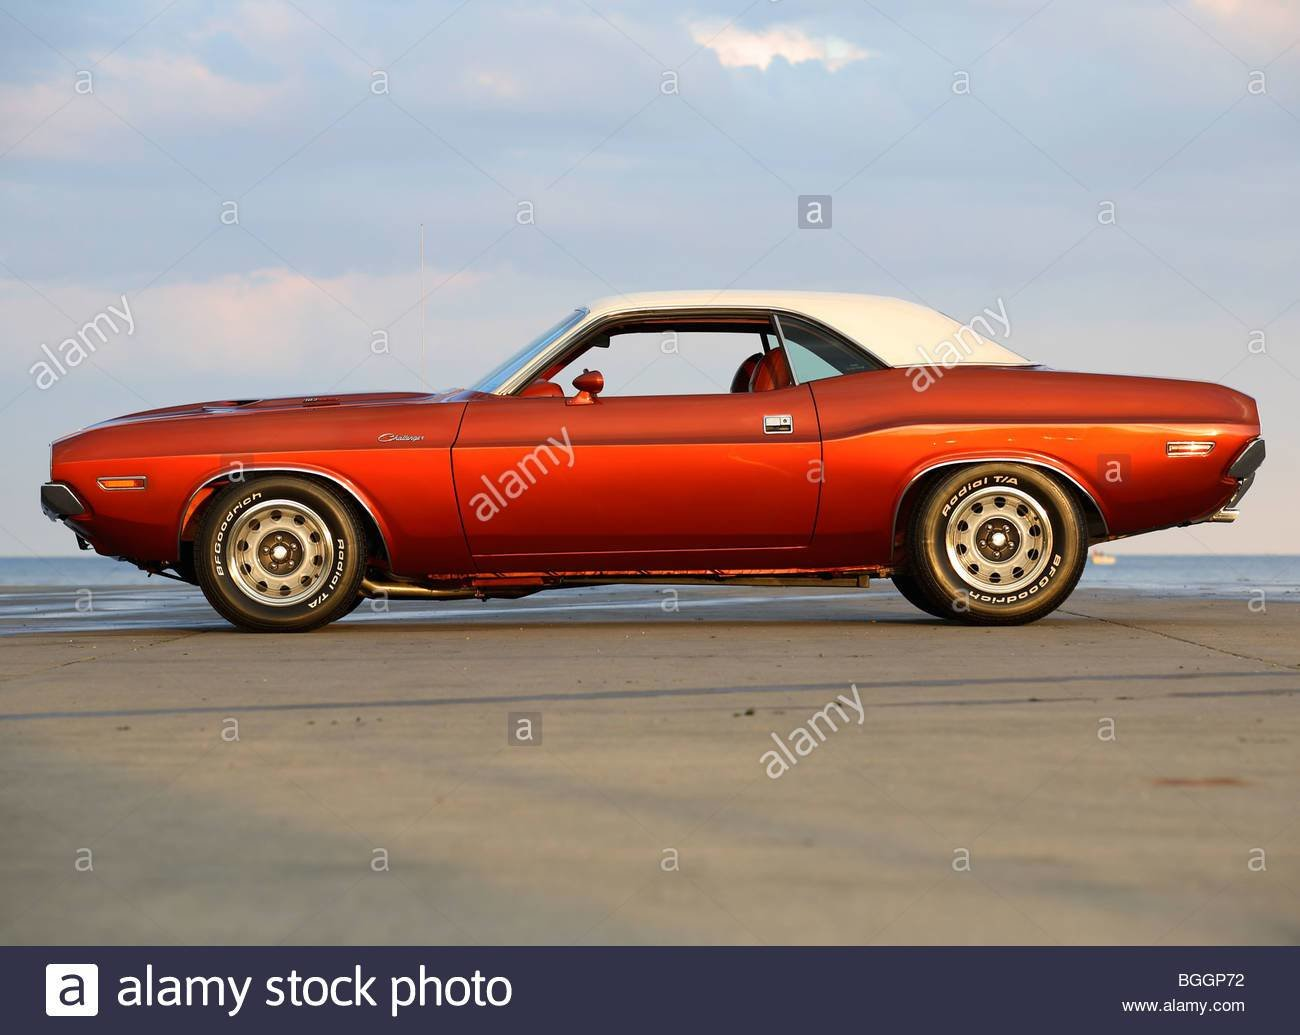 Latest 1970 Dodge Challenger Muscle Car Profile Stock Photo Free Download